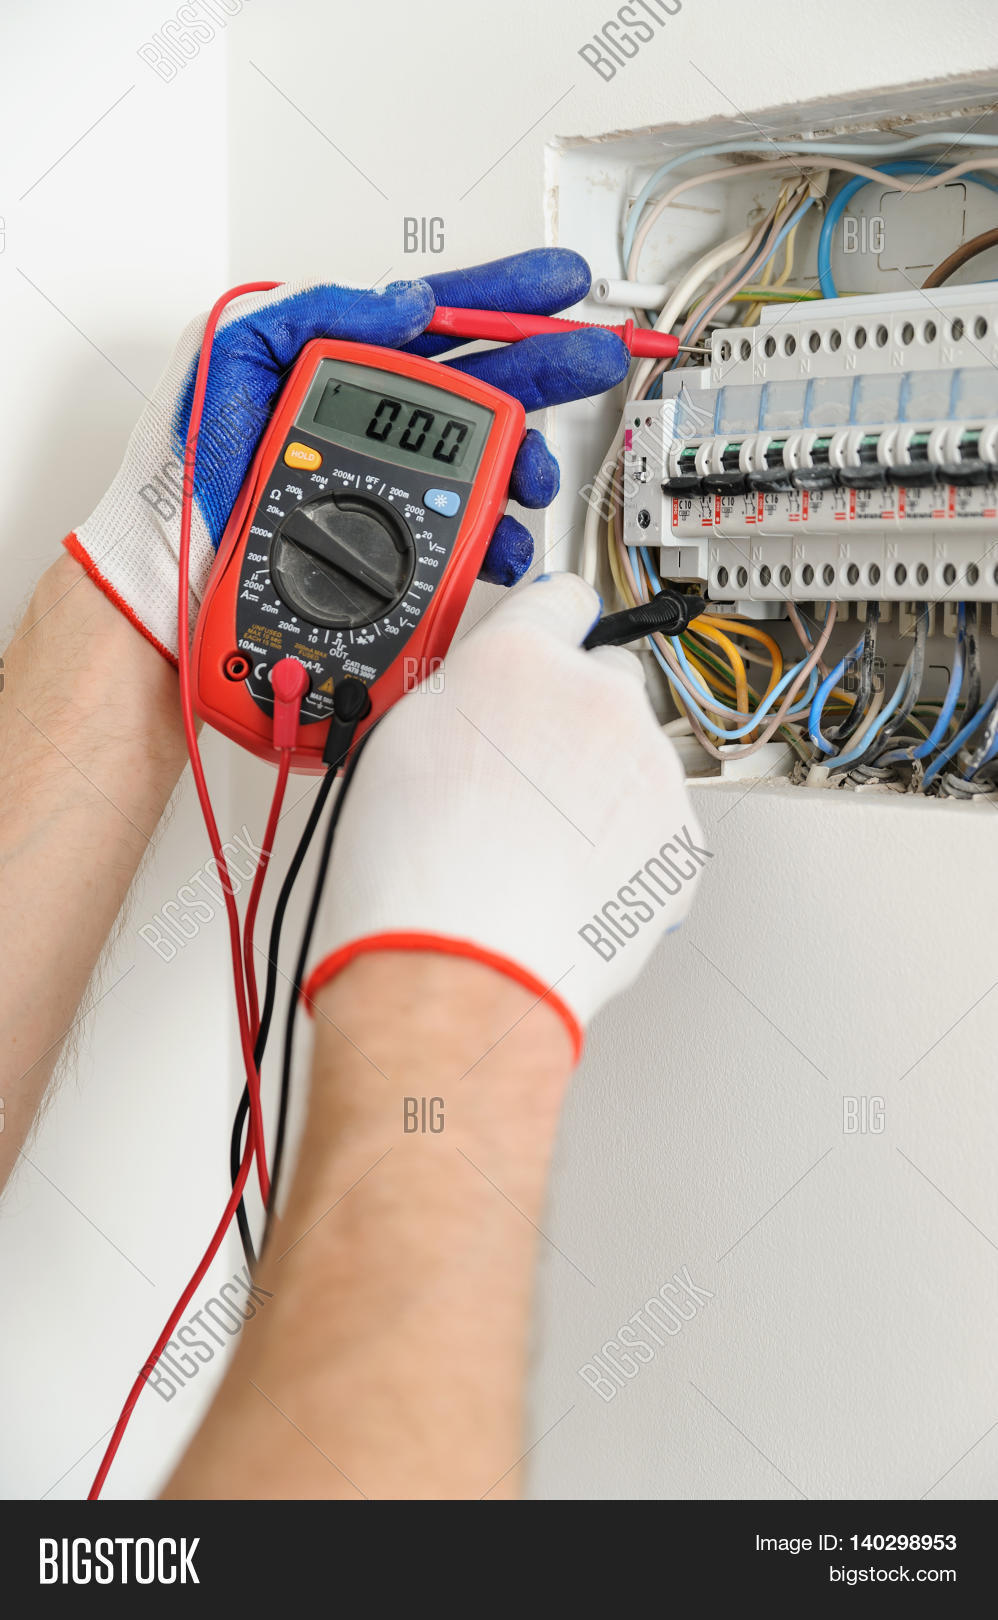 140298953 how to test fuse box with multimeter efcaviation com how to test a fuse block at gsmportal.co